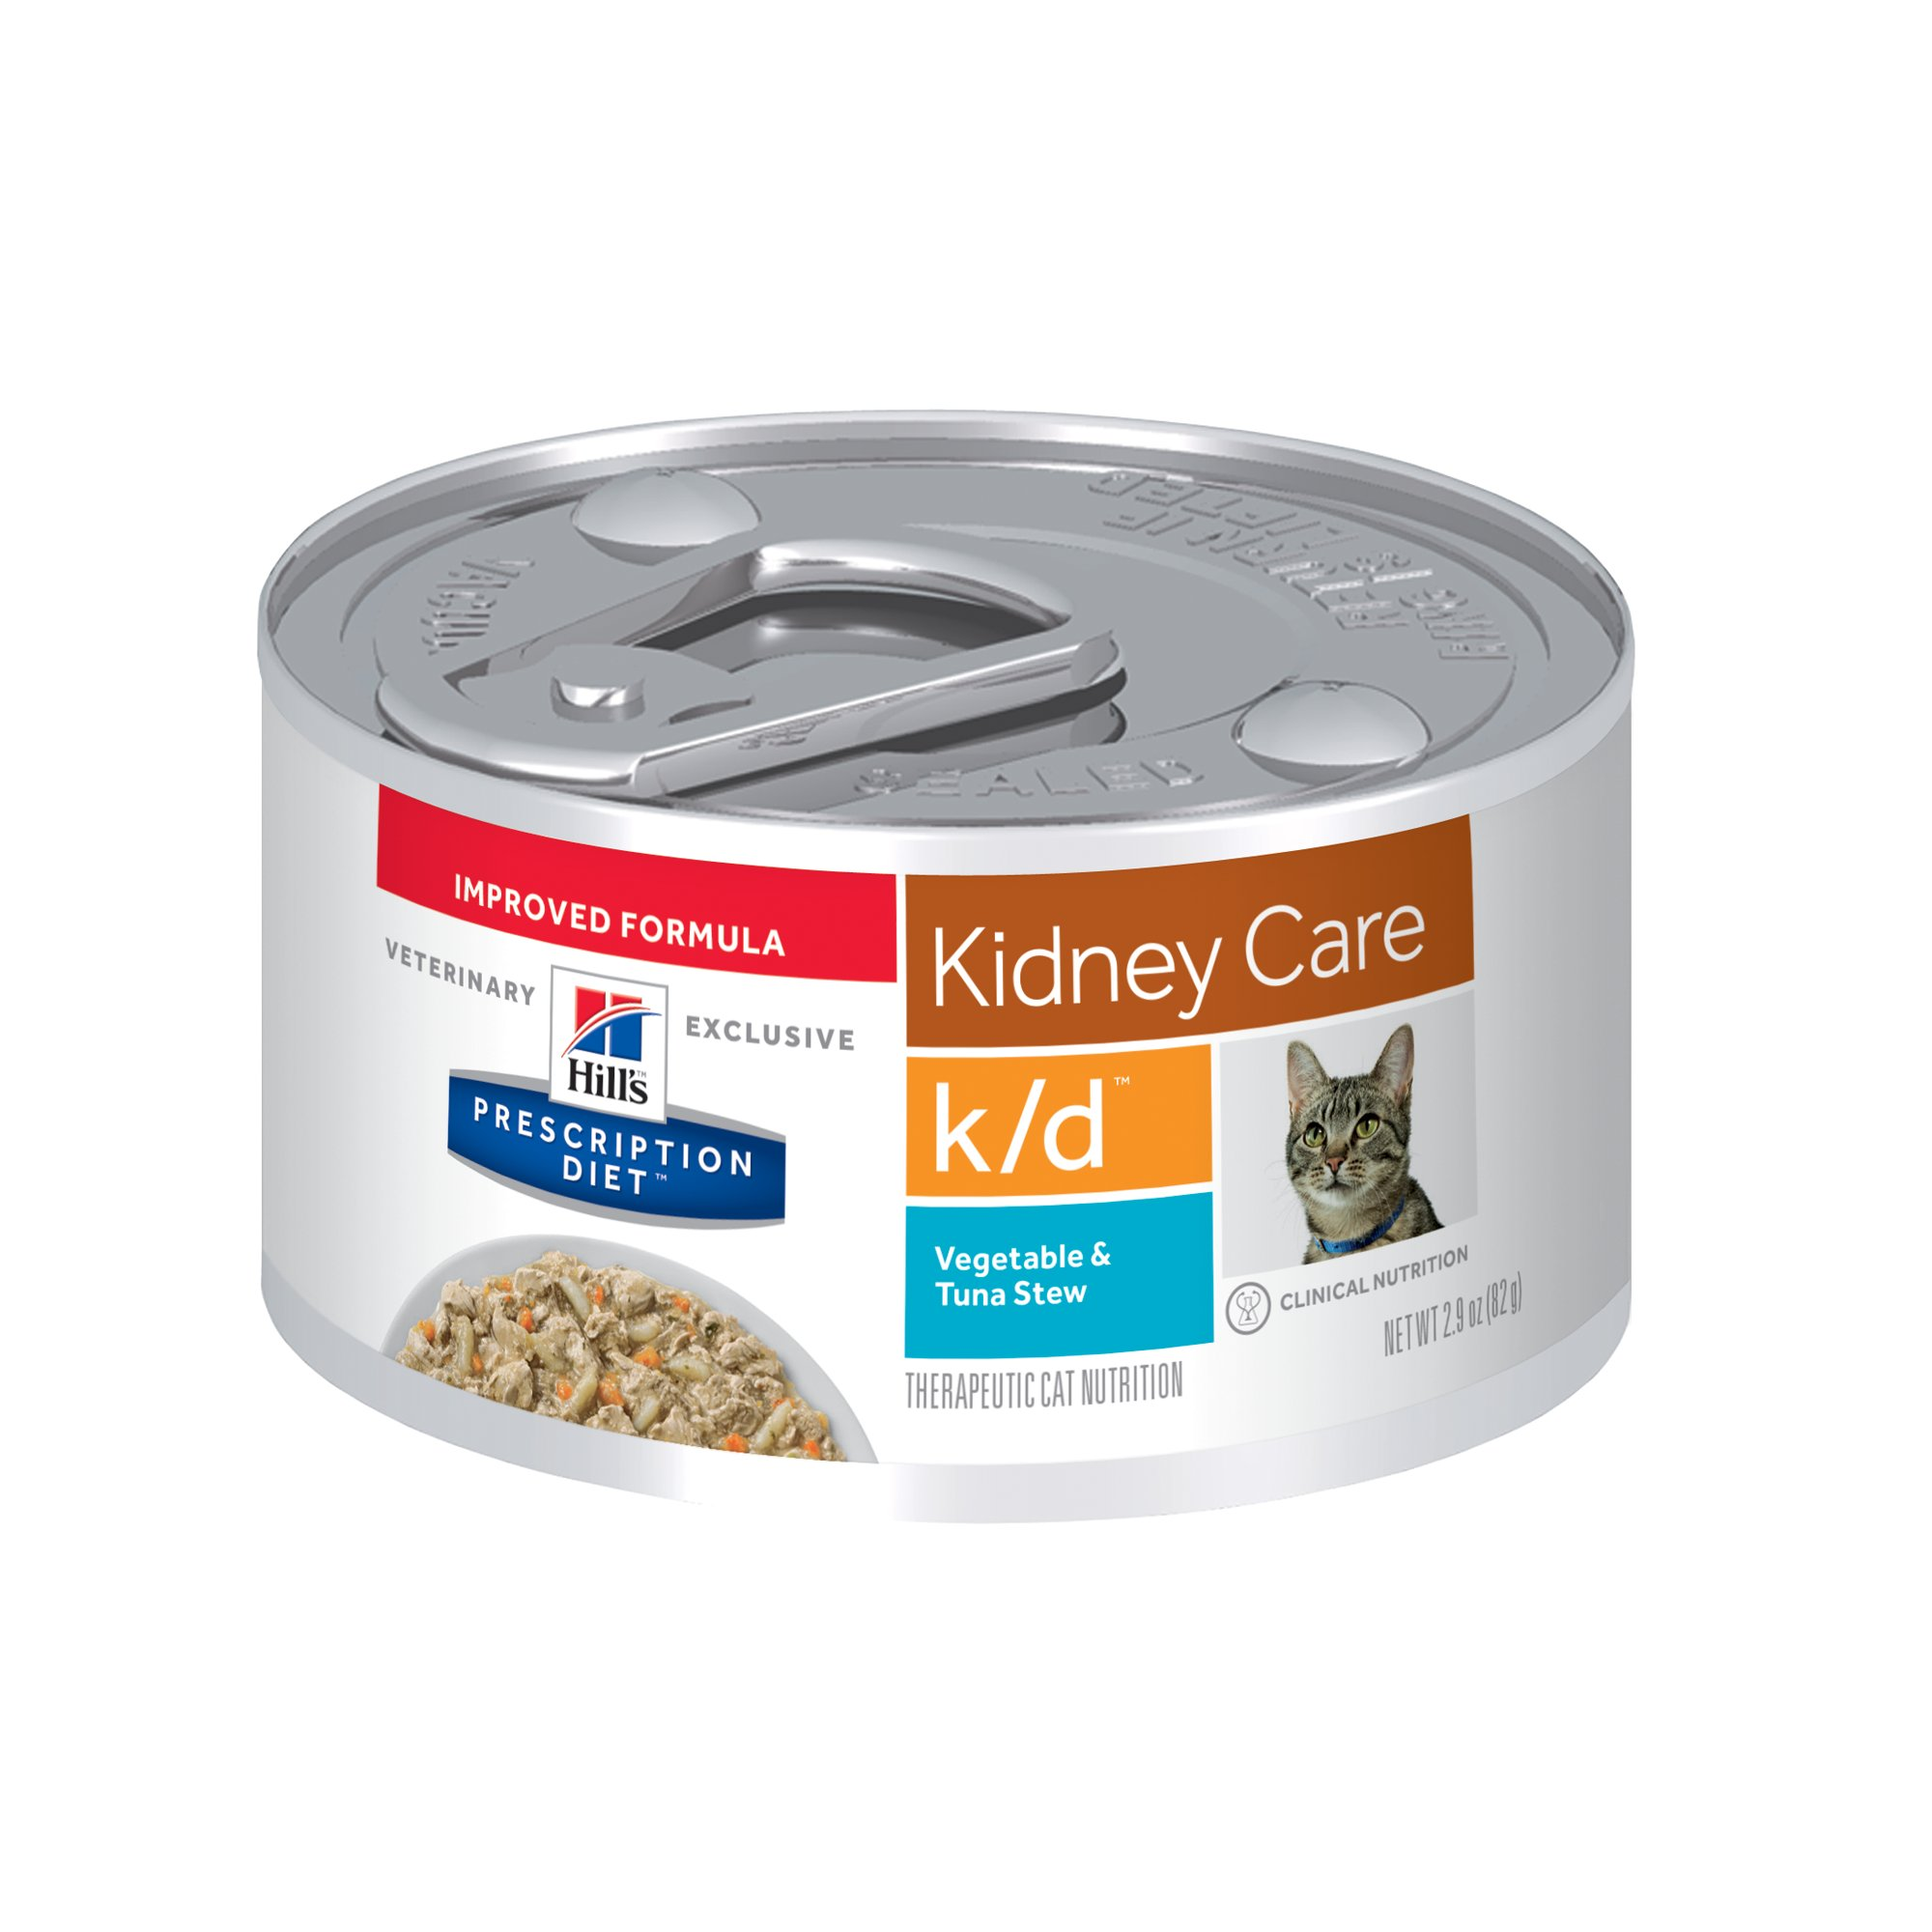 Kidney Cat Food Comparison